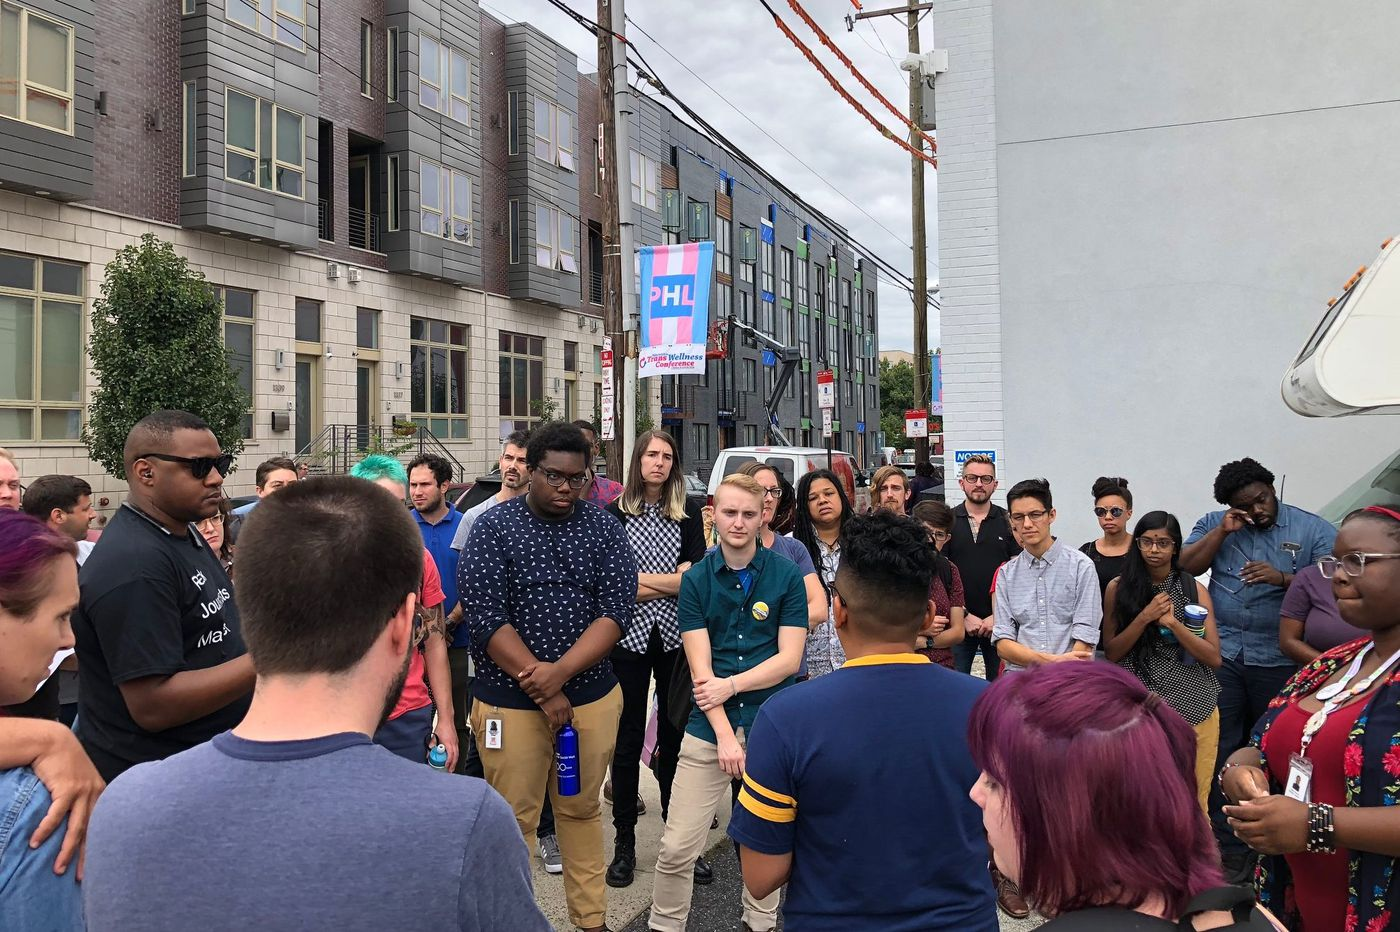 Nearly 50 Mazzoni Center staffers walk out to protest firing of diversity director